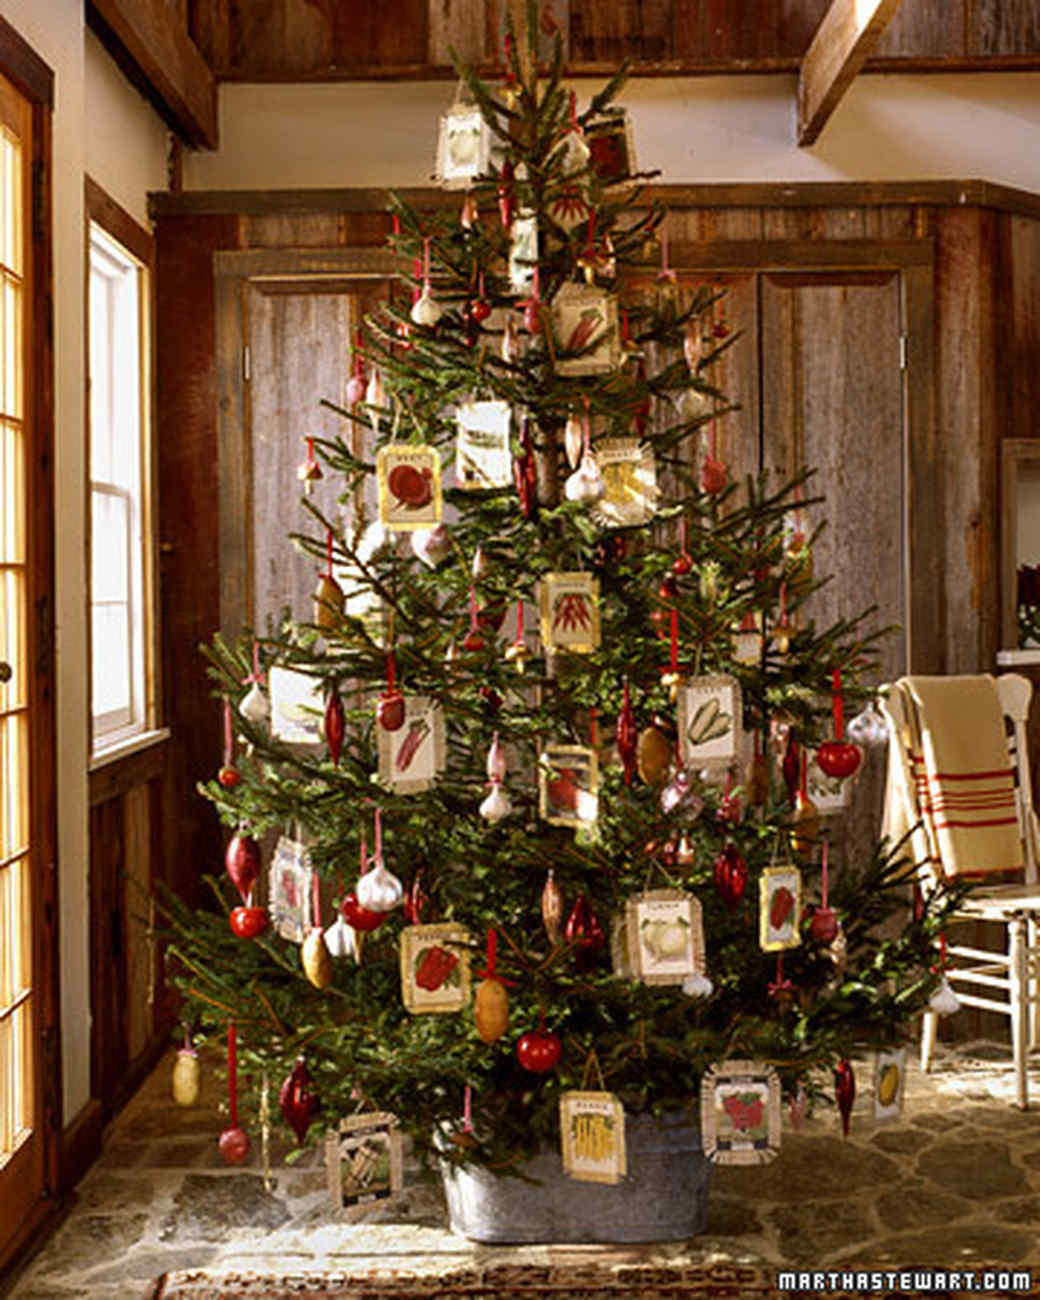 28 creative christmas tree decorating ideas martha stewart - Order Of Decorating A Christmas Tree